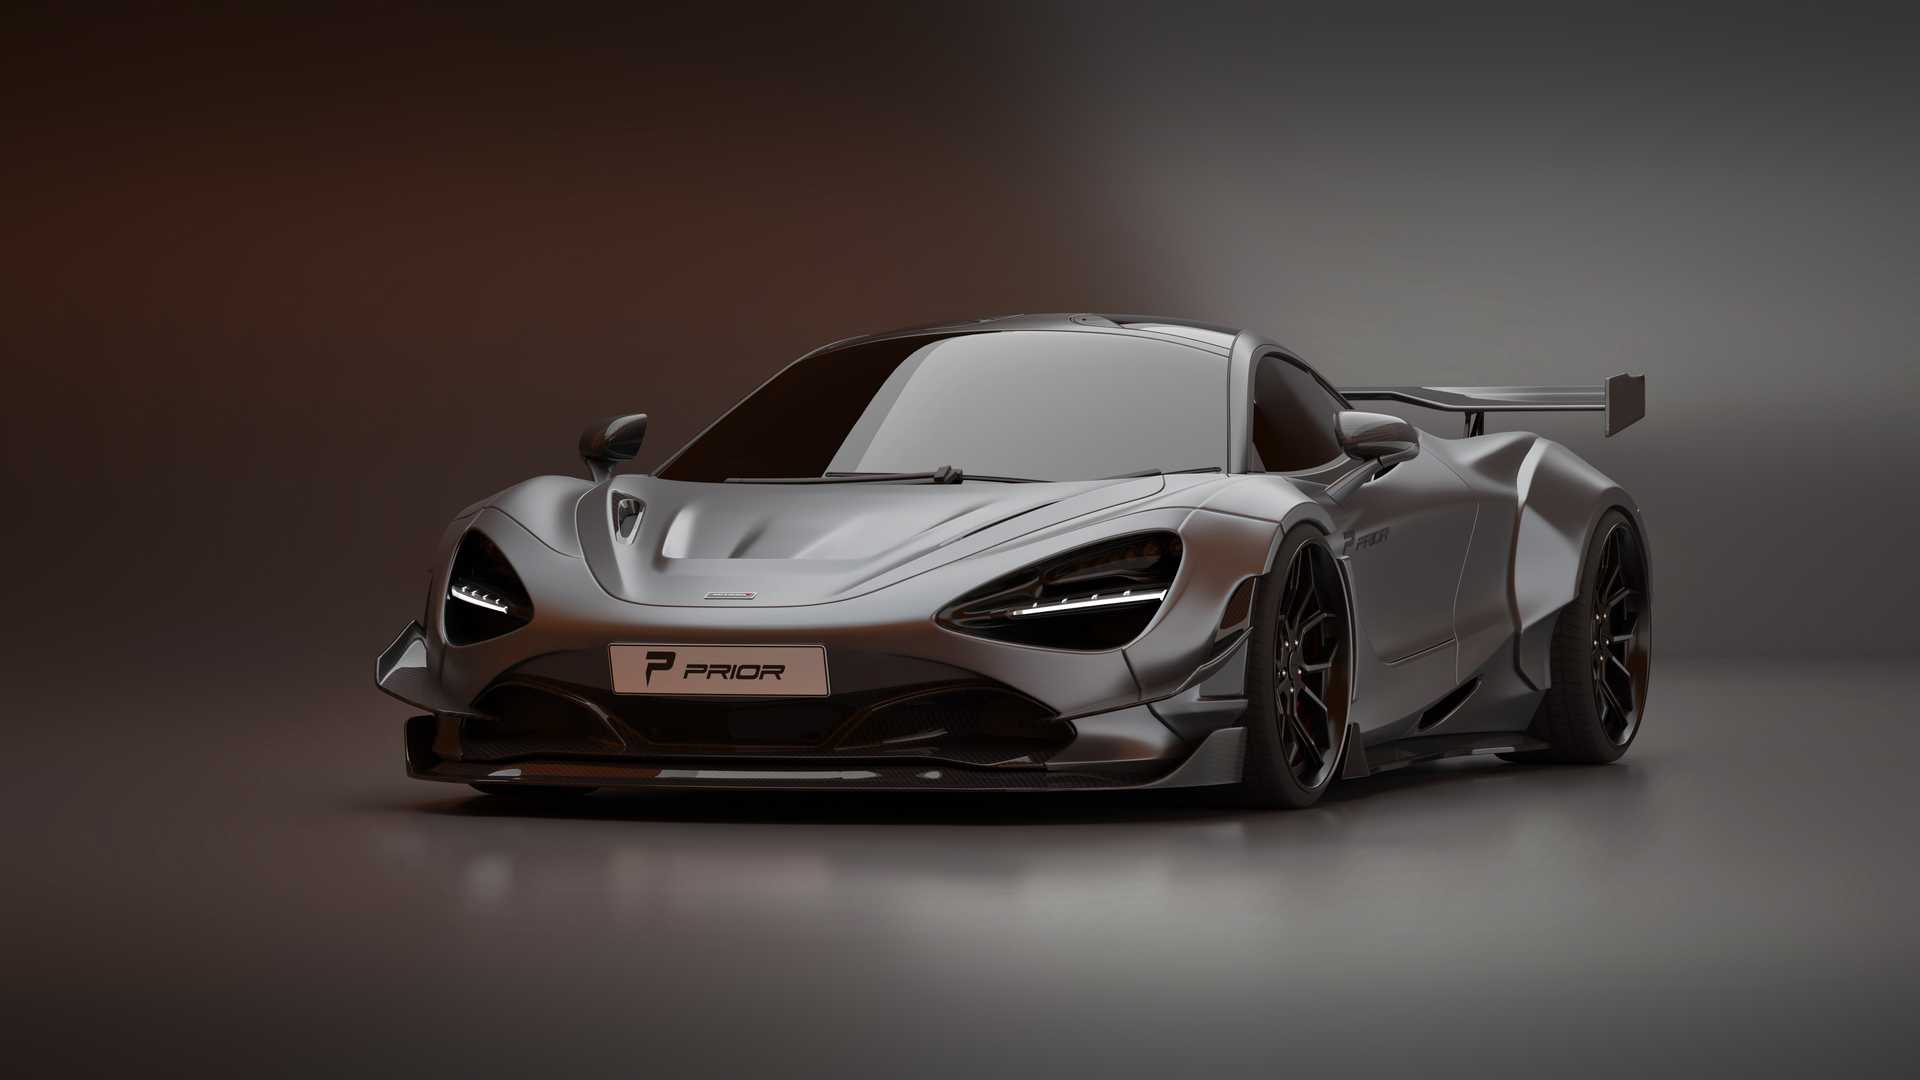 mclaren-720s-by-prior-design-4